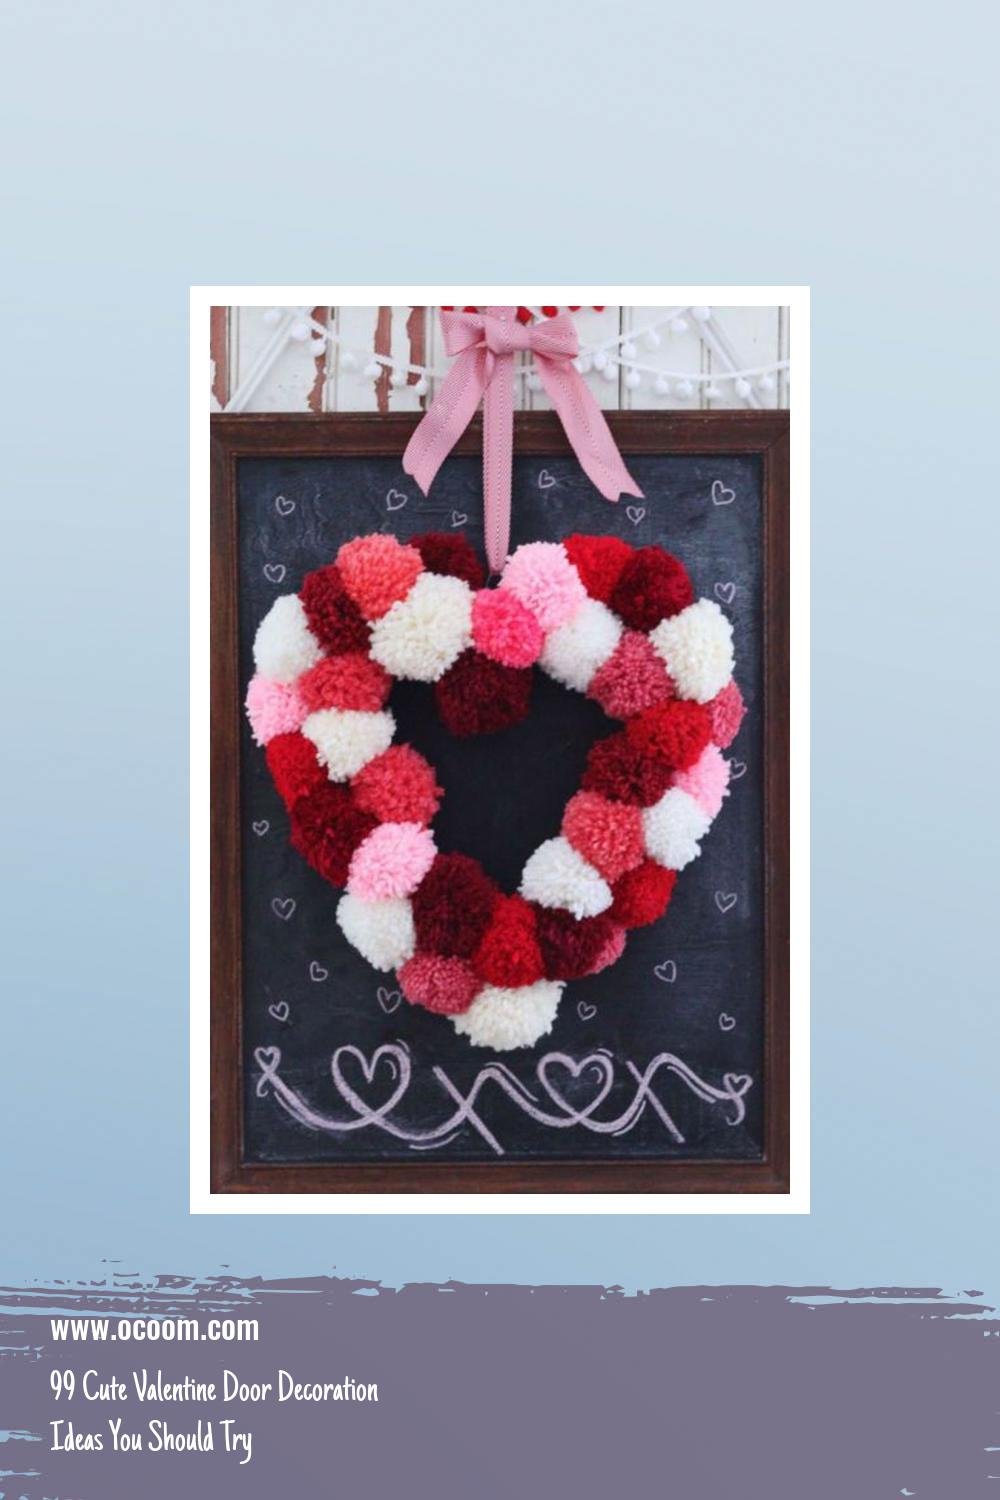 99 Cute Valentine Door Decoration Ideas You Should Try 30